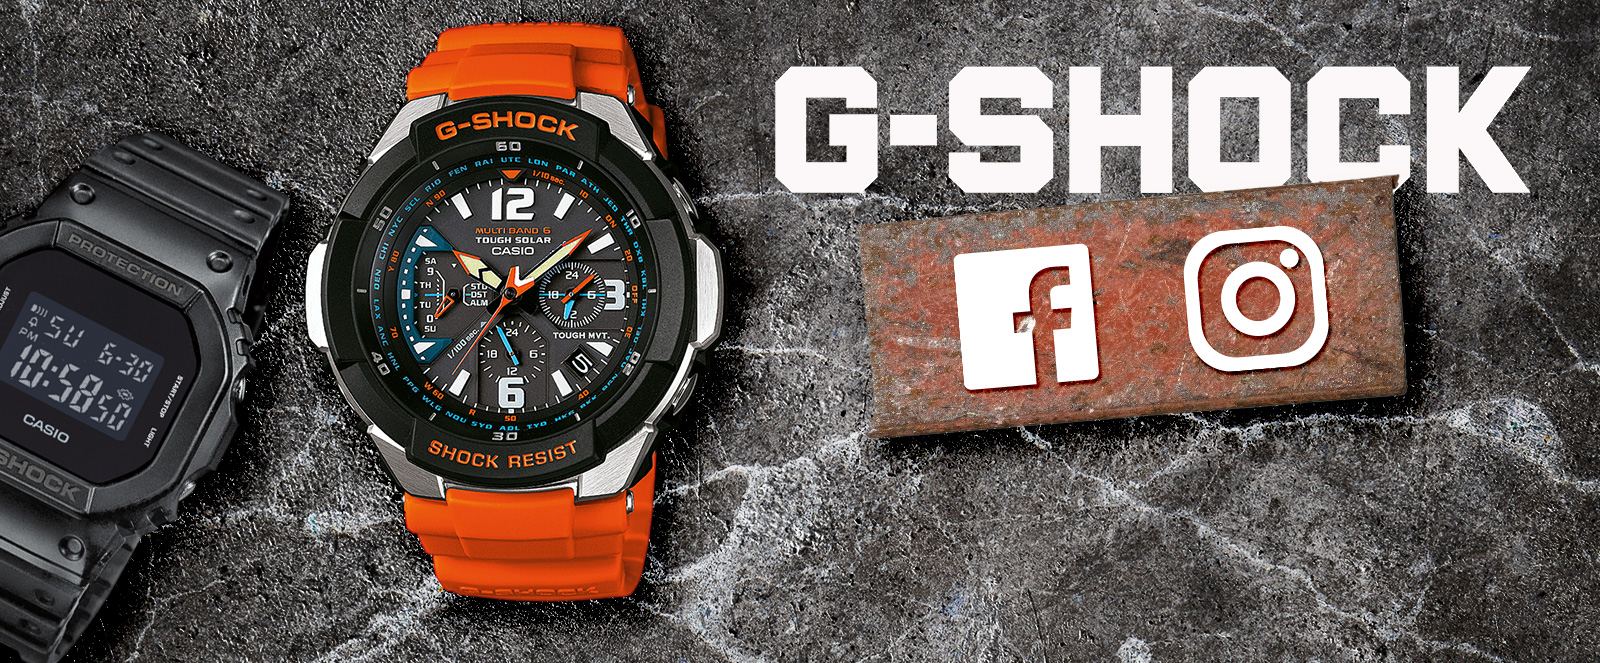 Social Media Case Casio G-Shock